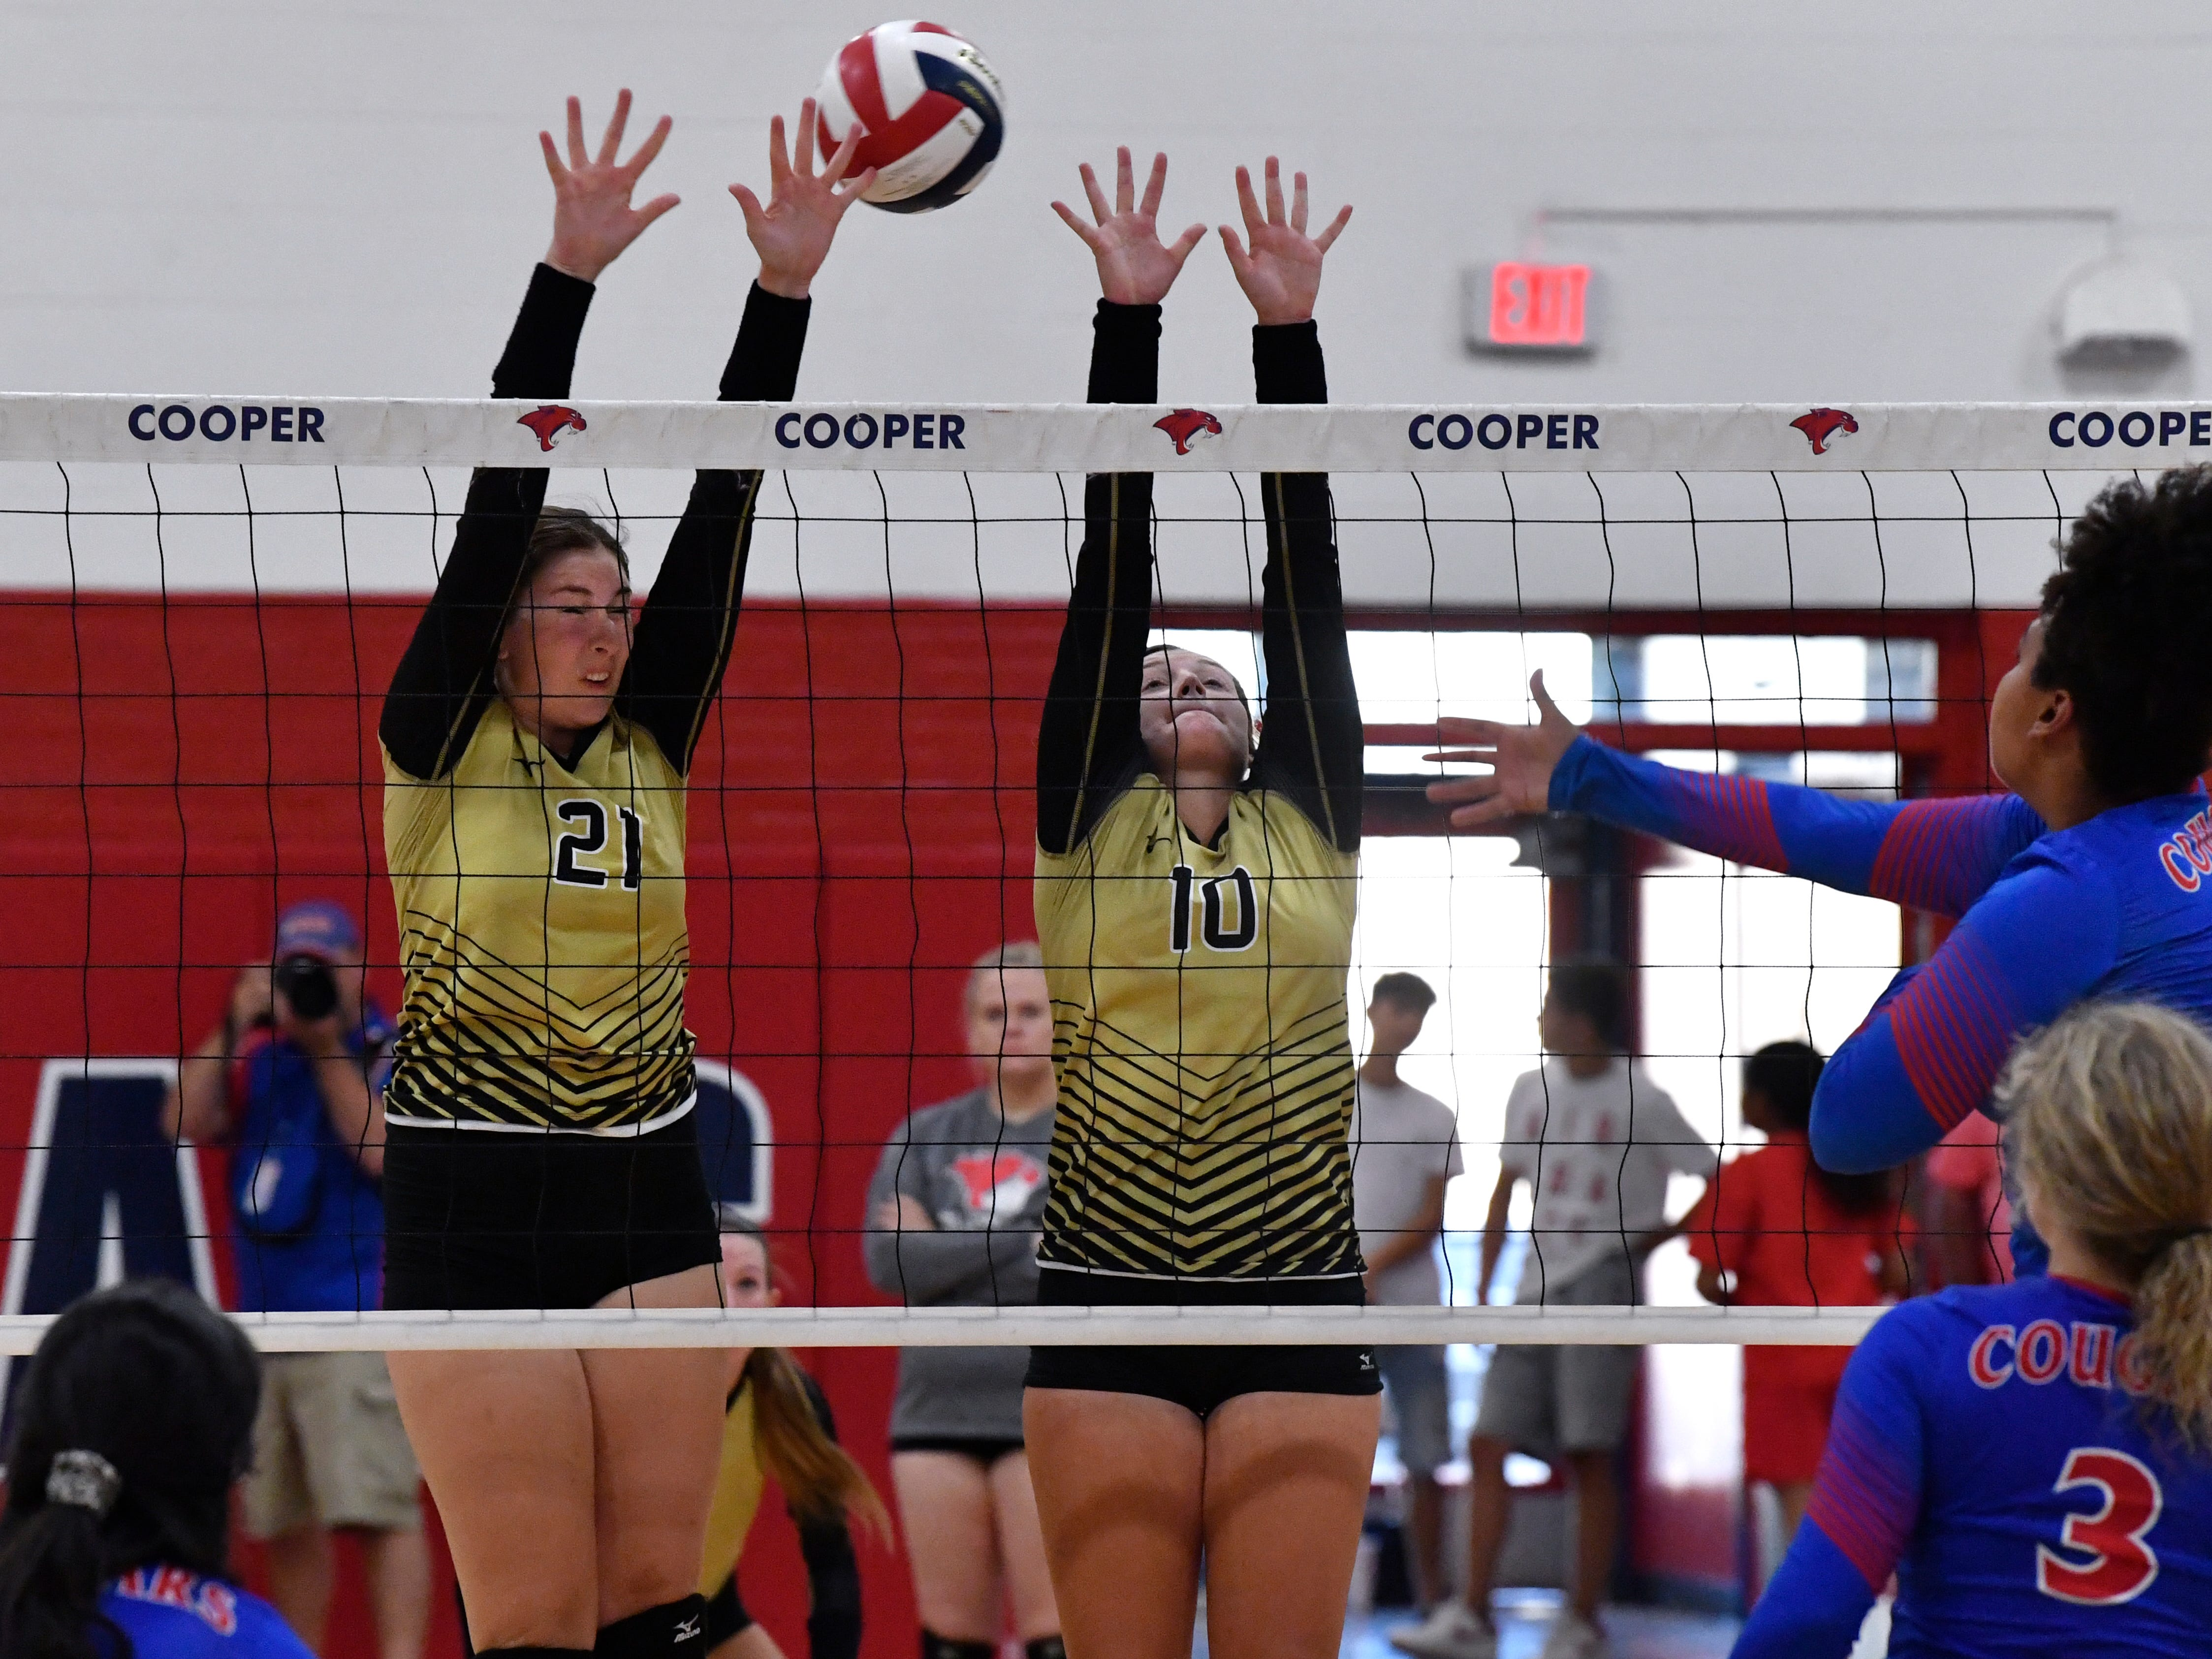 Abilene High's Sydne Lawler (left) and Saige McCray try to block a spike from Cooper's Jada Willis. Abilene High won the crosstown volleyball game Tuesday August 7, 2018 against Cooper High in the best-of-five match, 25-21, 16-25, 25-20, 17-25, 15-7.